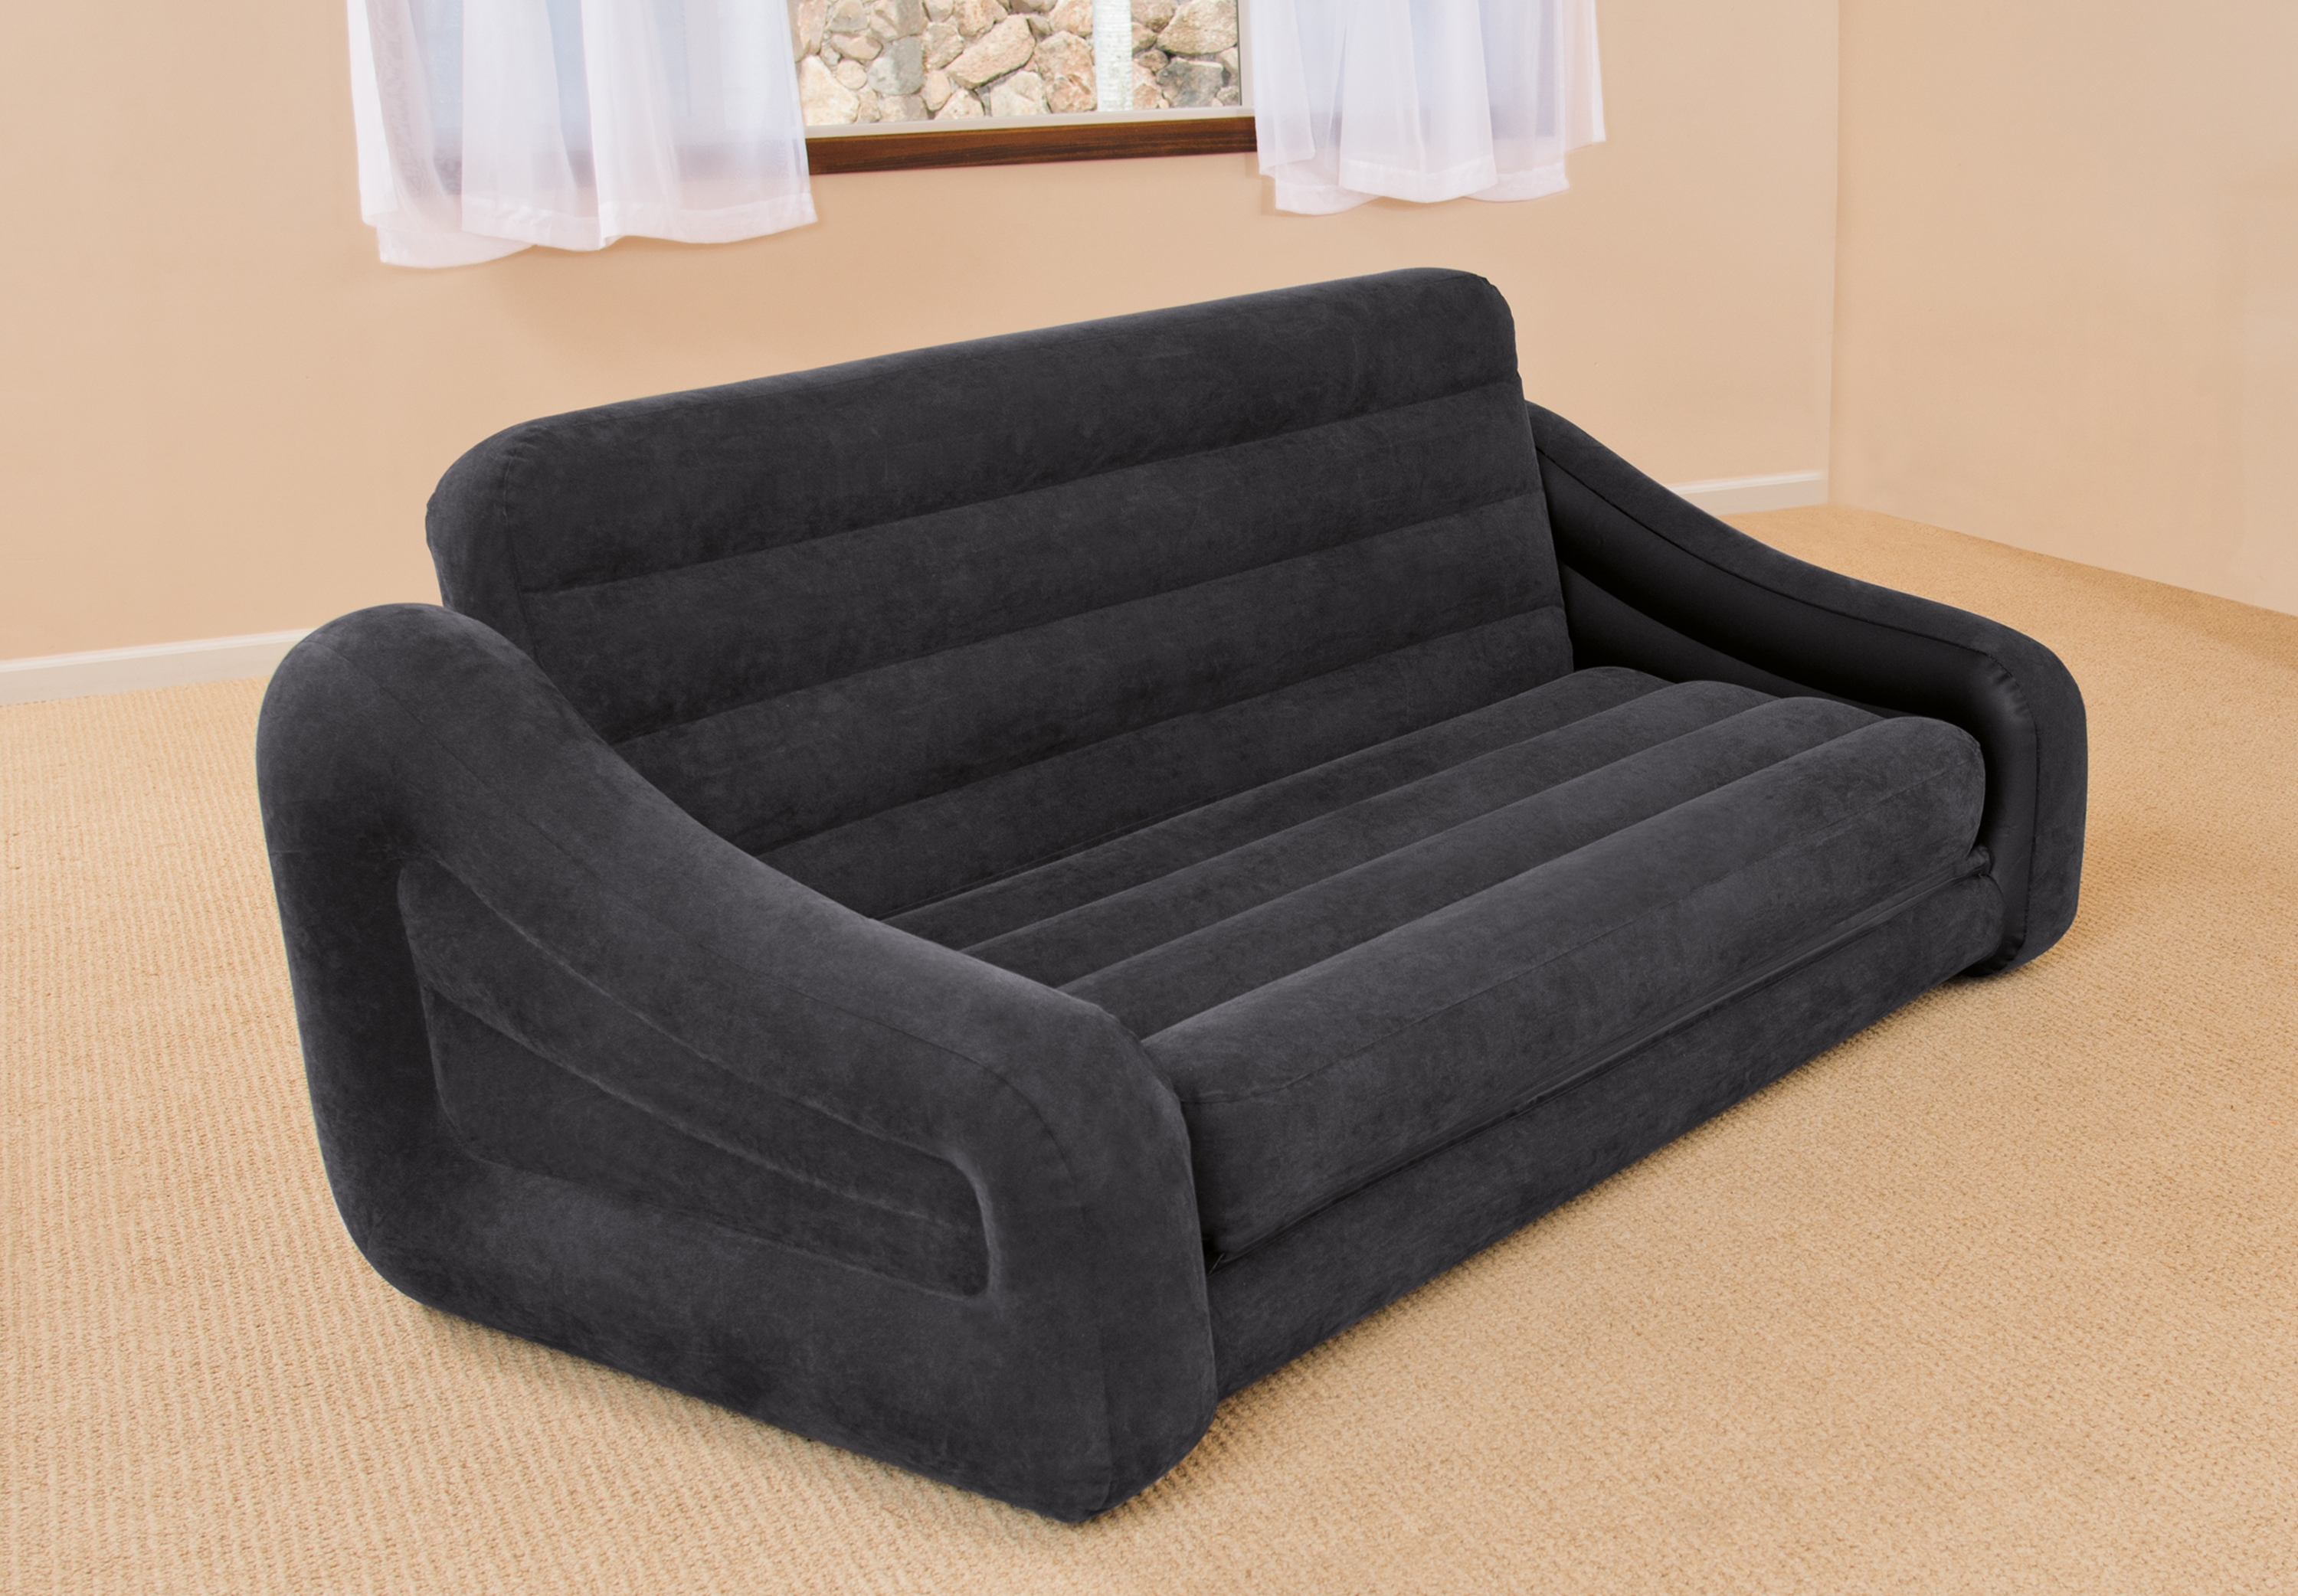 Intex Inflatable Pull Out Sofa Queen Bed Mattress Sleeper W Ac With Regard To Pull Out Sofa Chairs (Image 8 of 15)